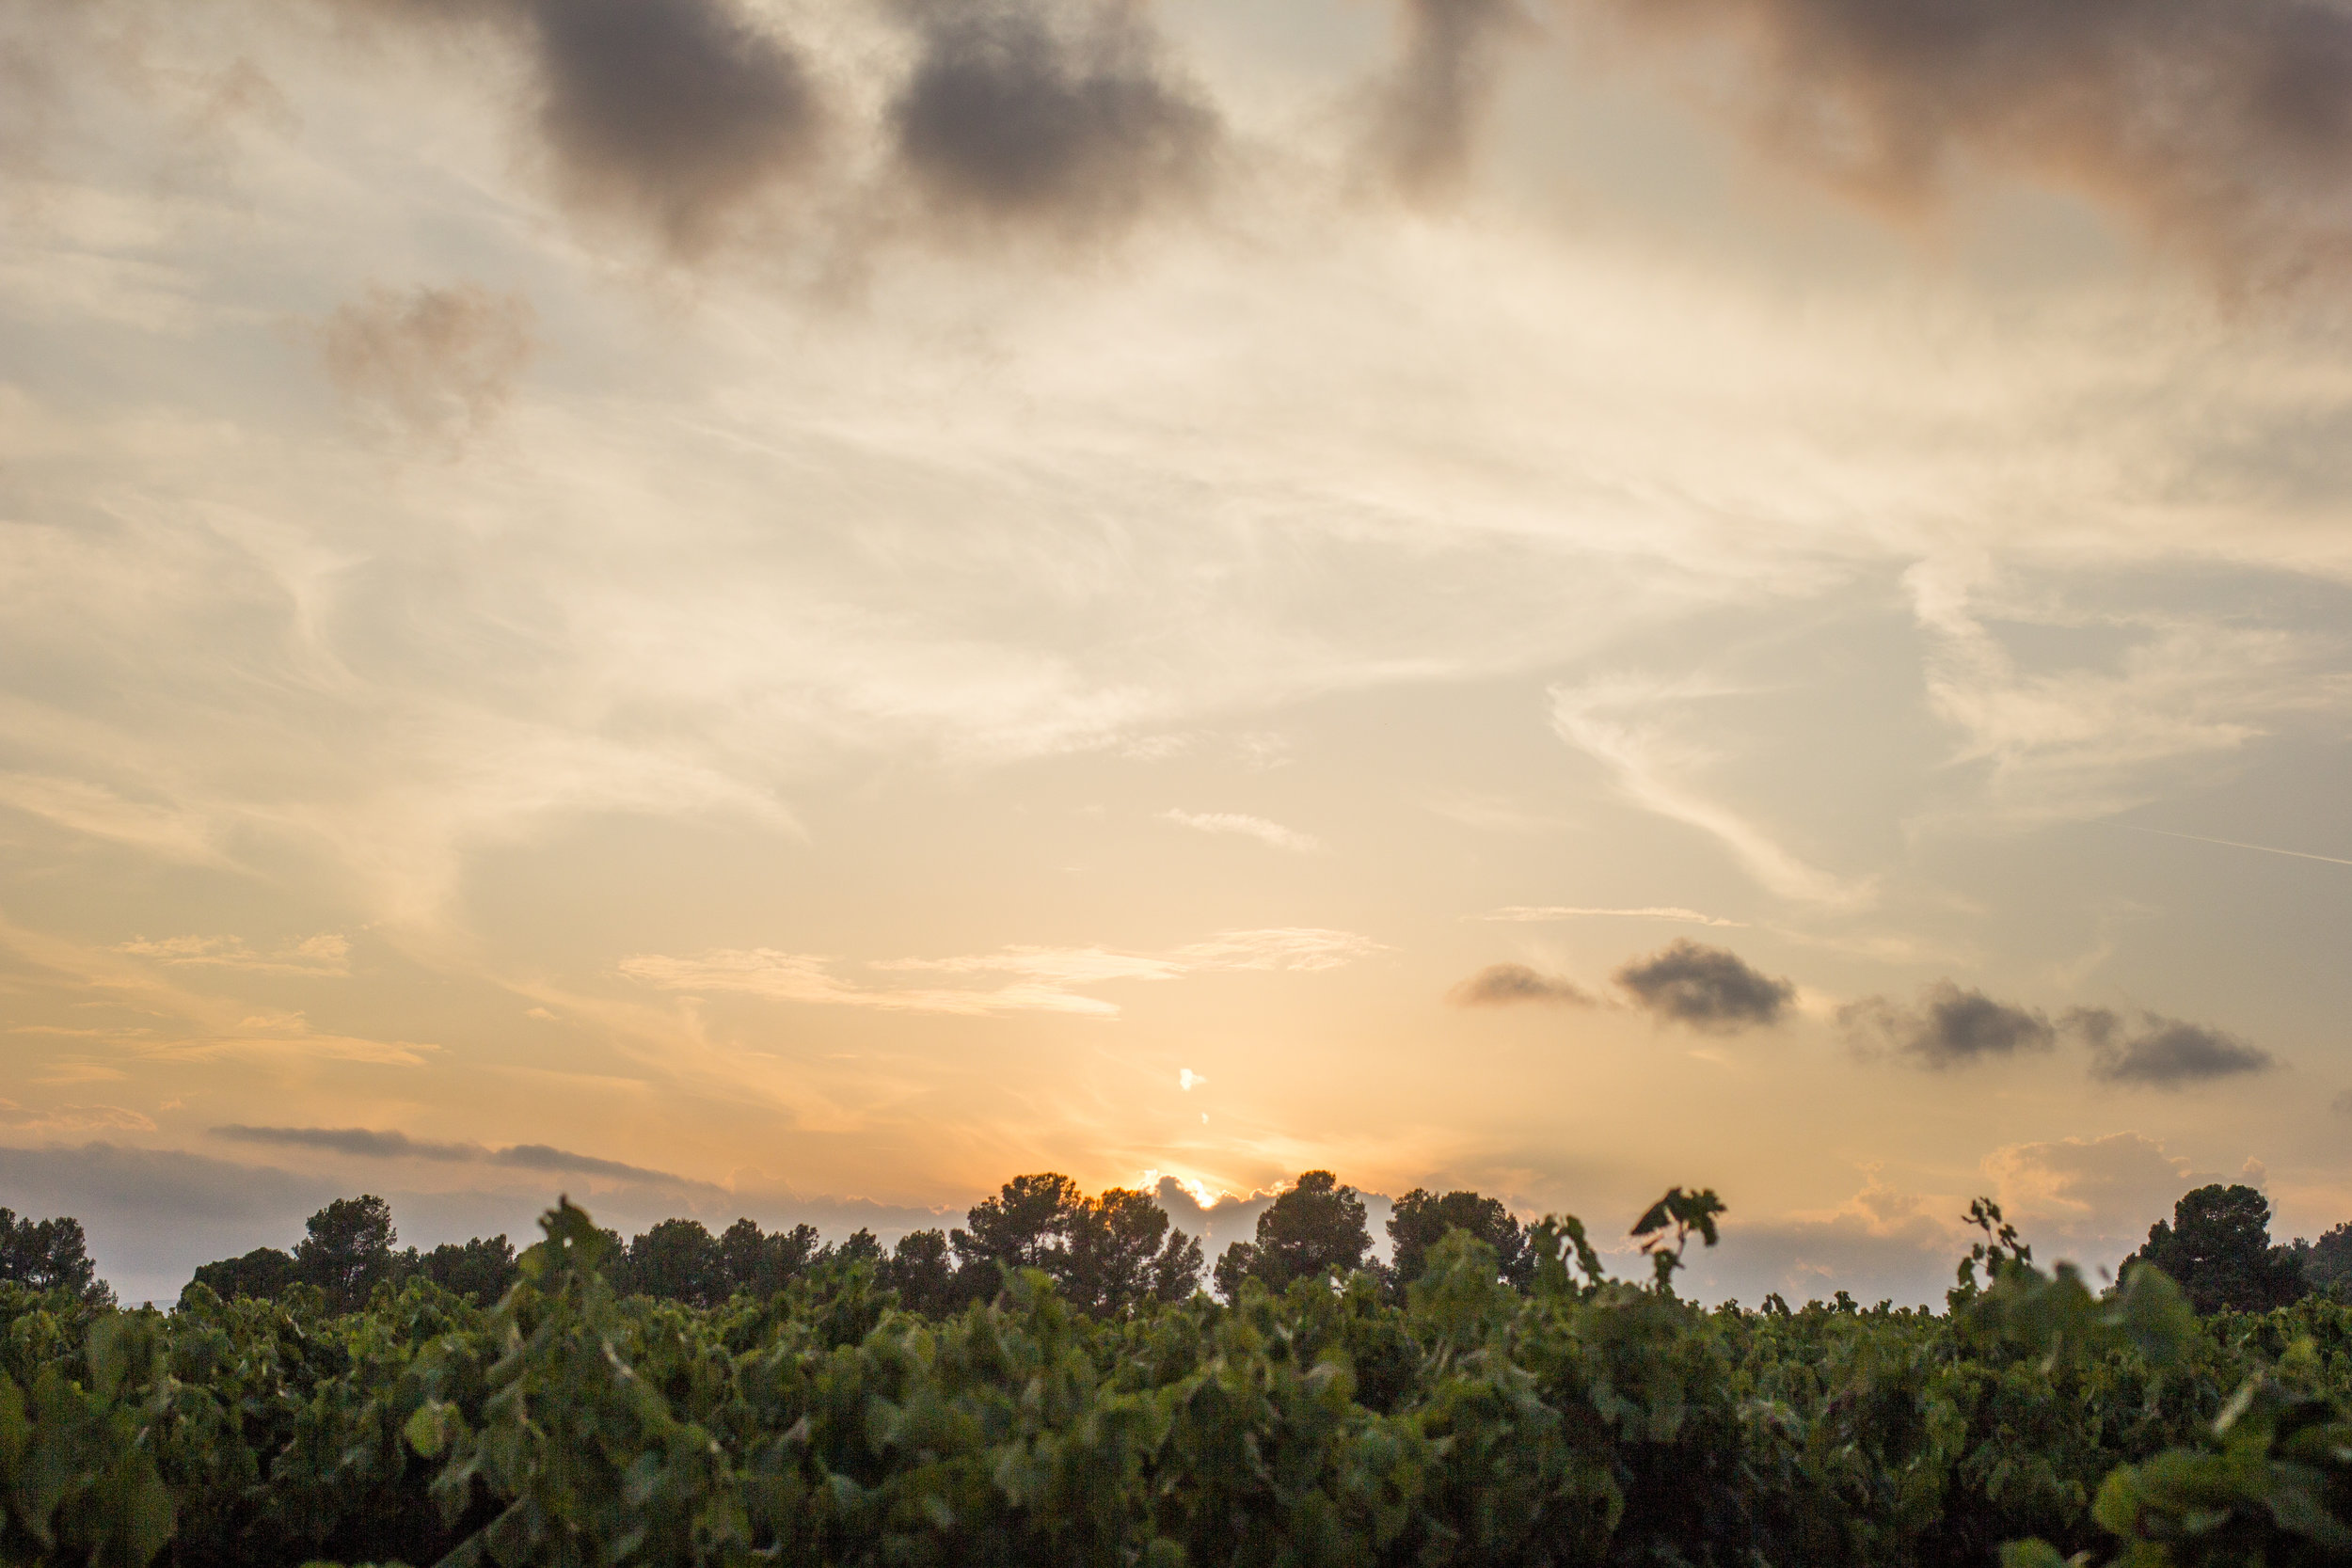 Dramatic sunset over a hilltop in Penedes